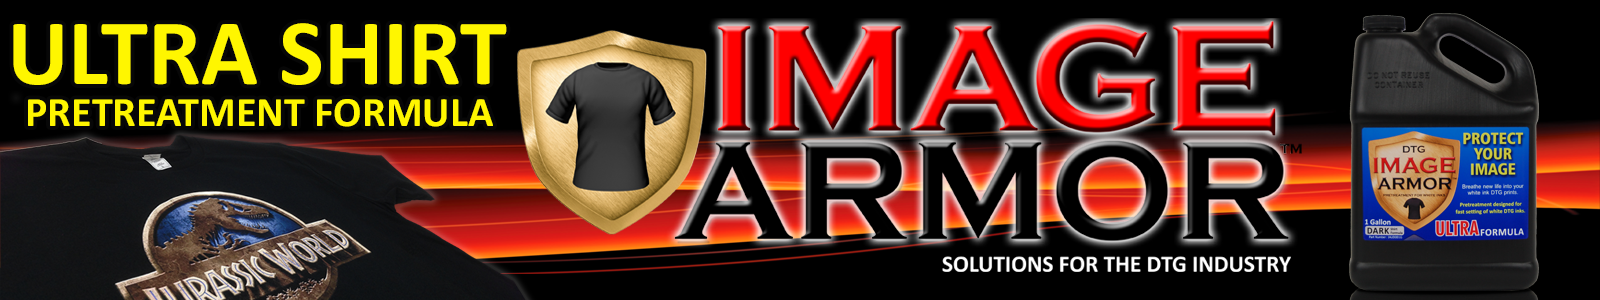 Image Armor ULTRA Pretreatment Header